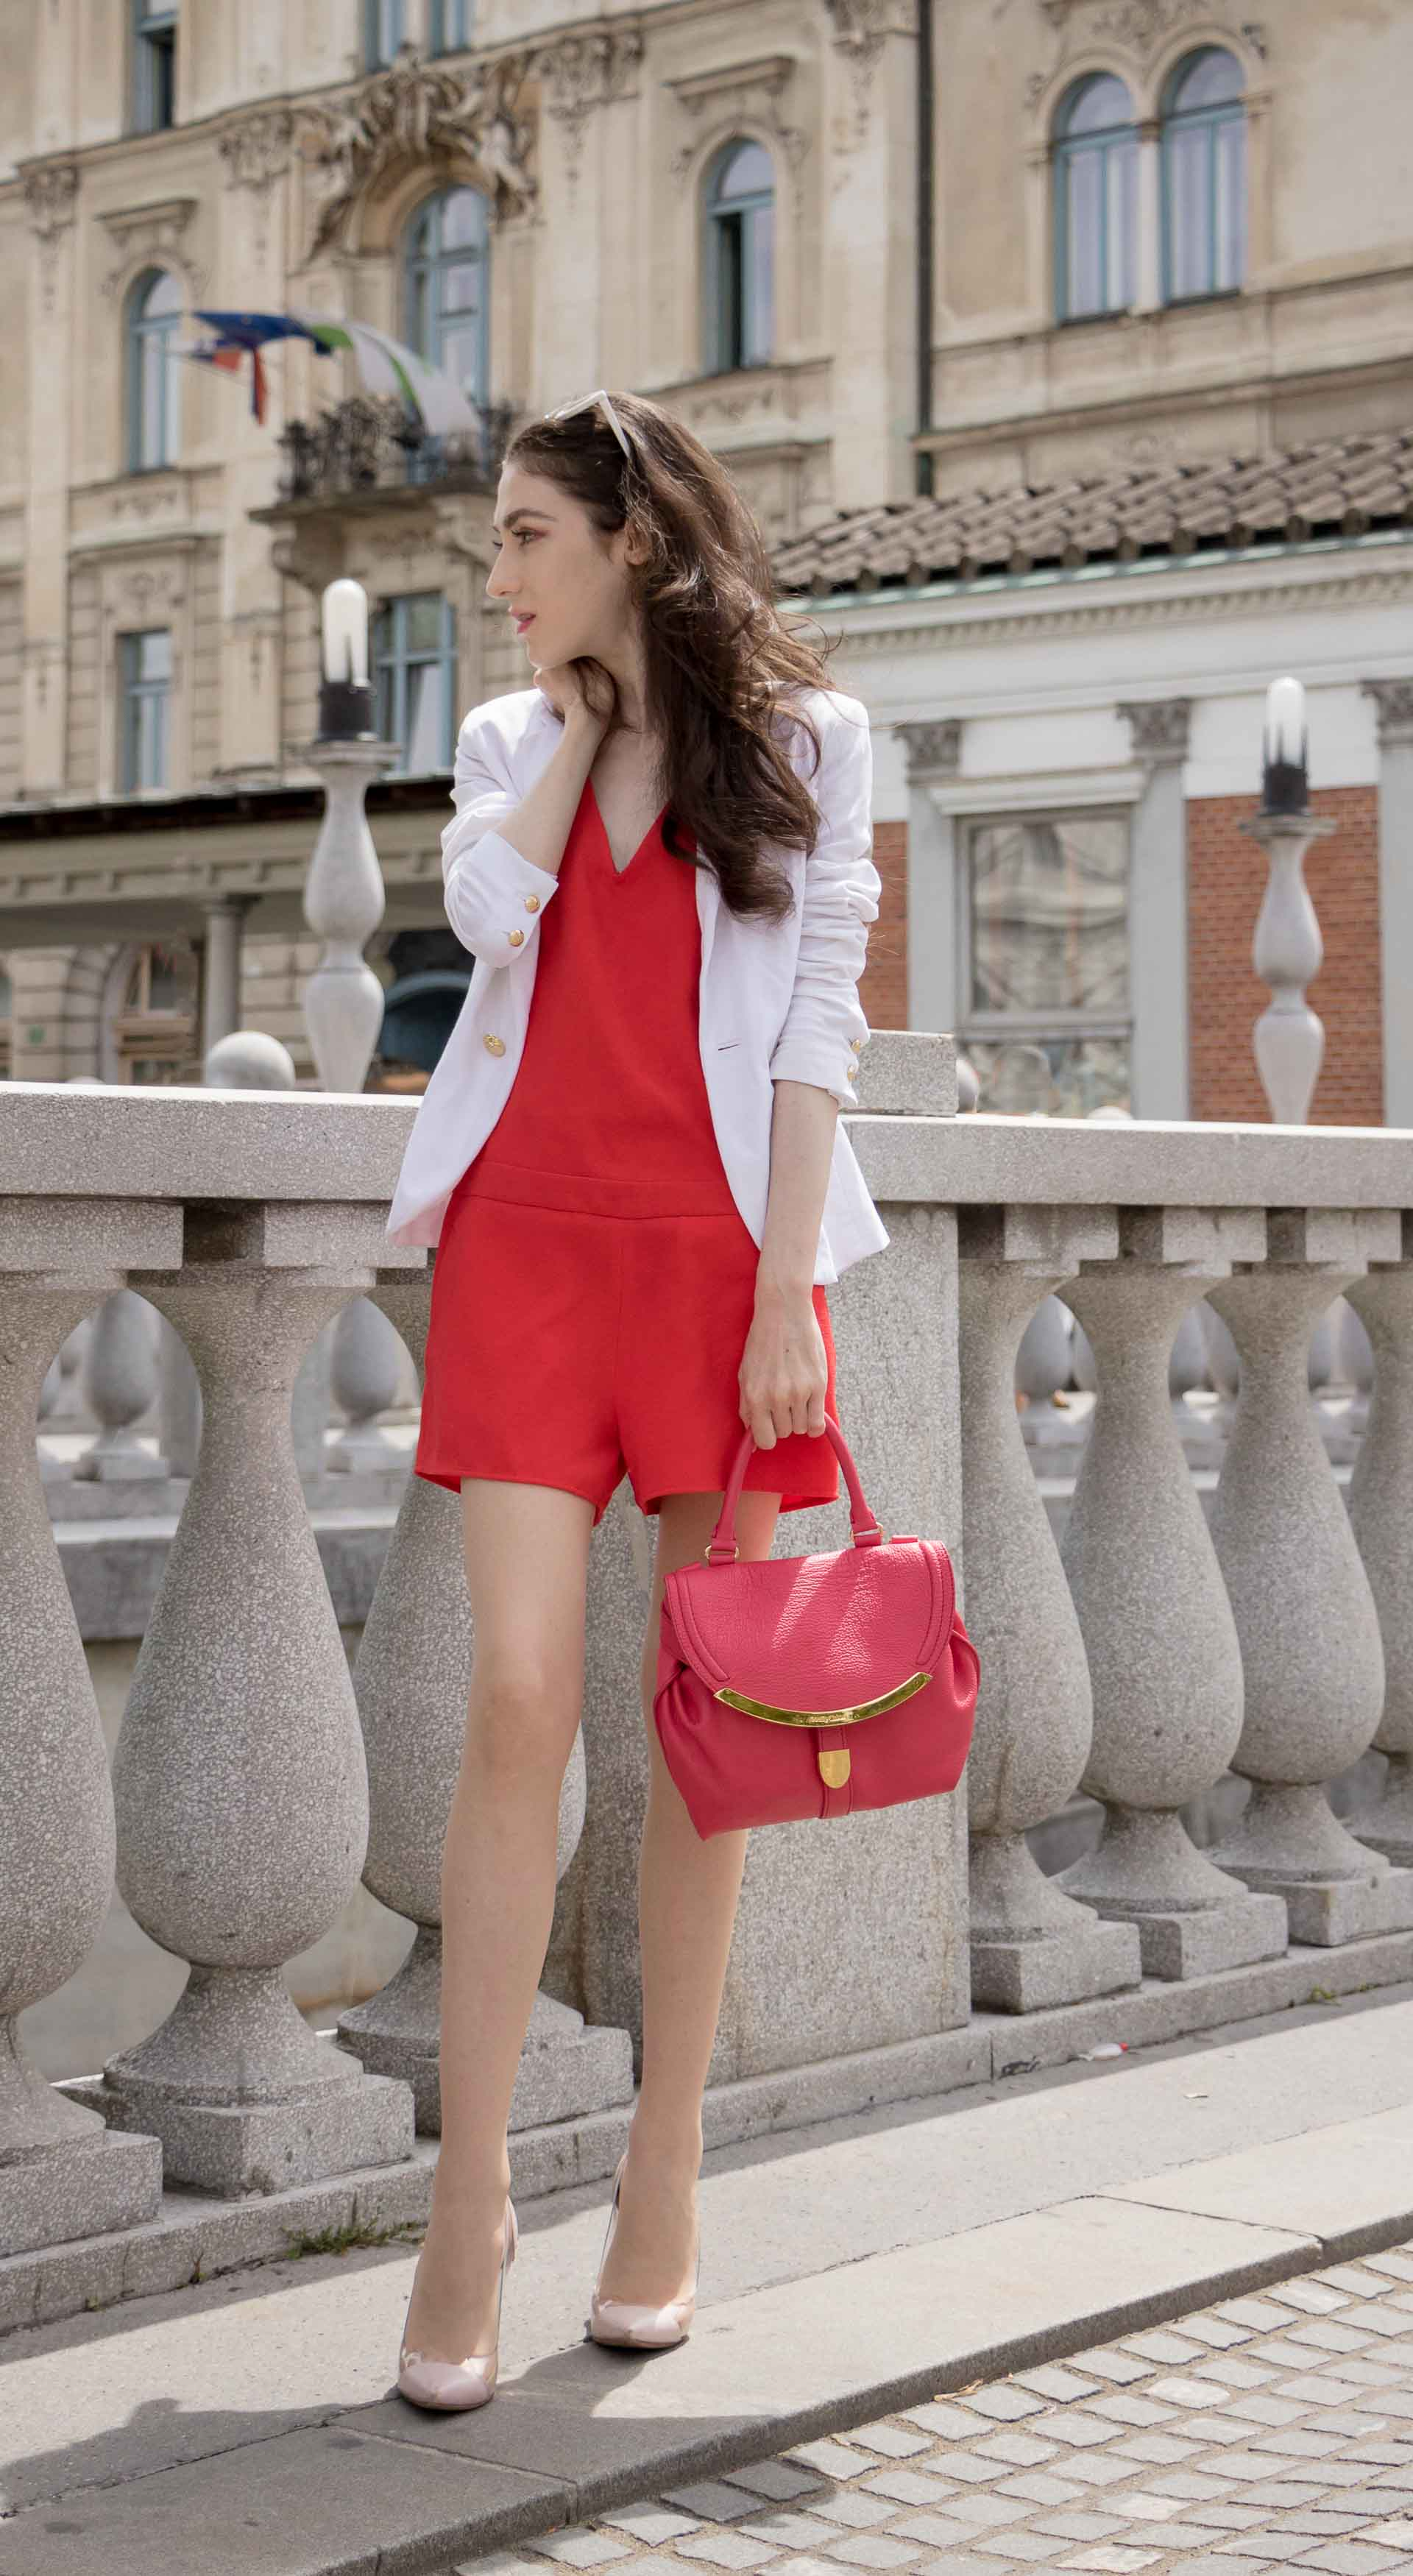 Veronika Lipar Fashion Blogger of Brunette from Wall Street dressed in red playsuit, white blazer, Adam Selman x Le Specs white cat eye Lolita sunglasses, pink top handle See by Chloe bag, Gianvito Rossi plexi pumps